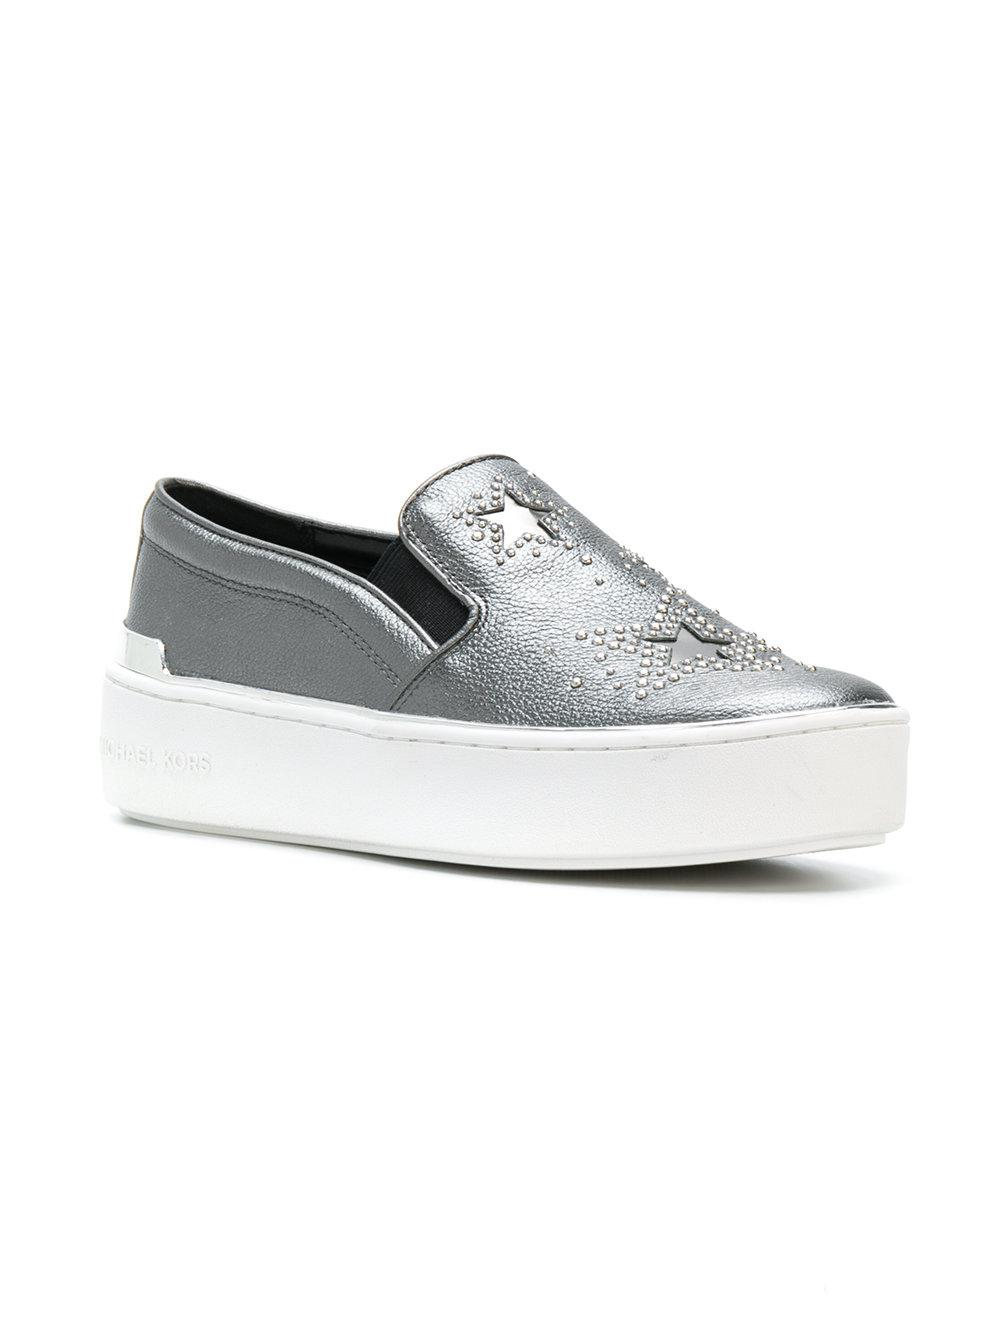 MICHAEL Michael Kors Leather Tyson Slip-on Sneakers in Grey (Grey)